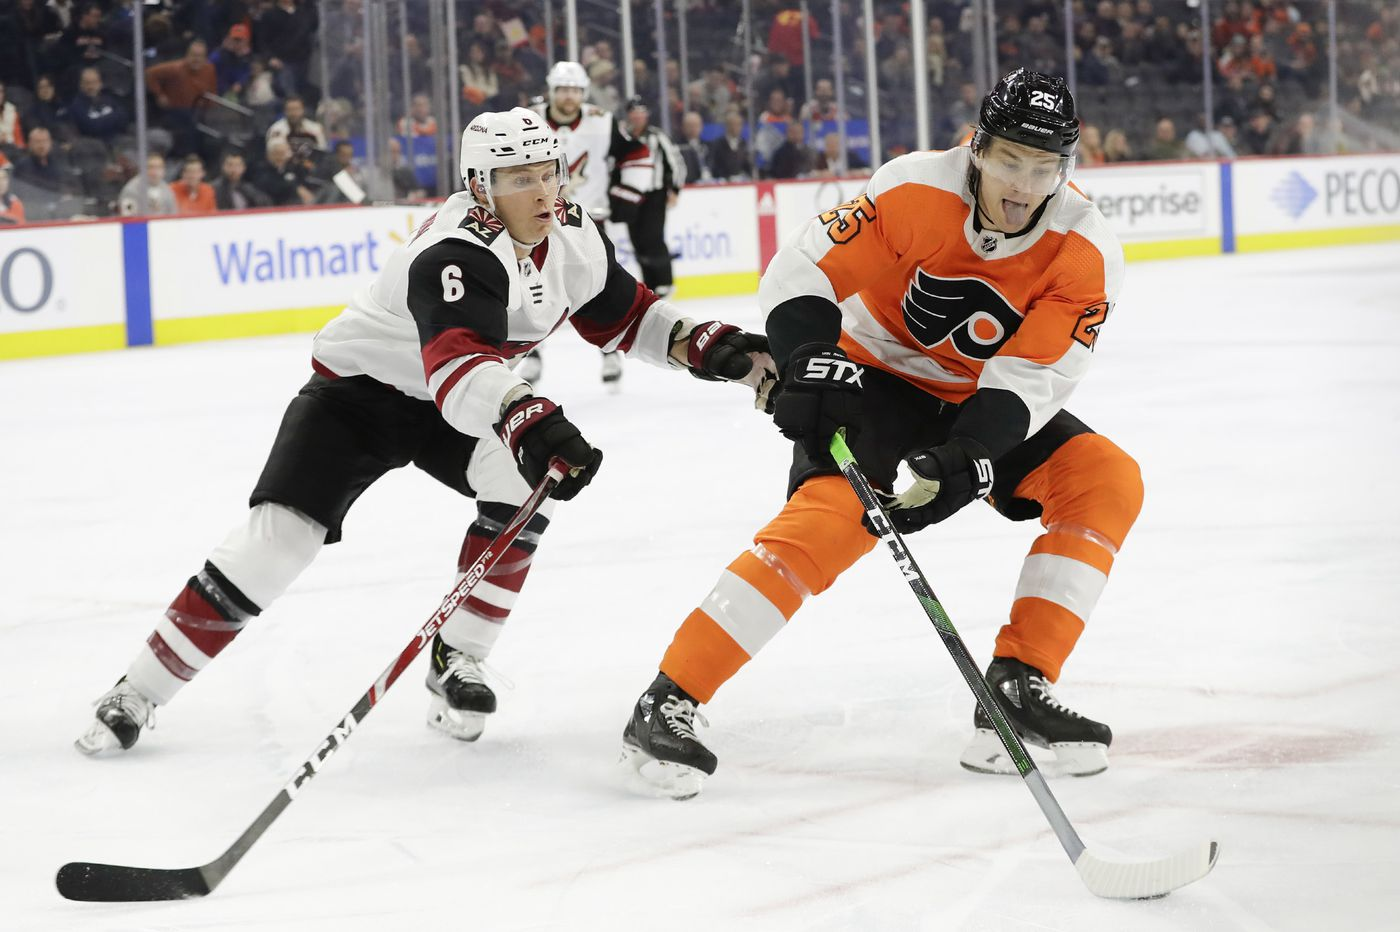 Flyers look to revive a power play that has foundered despite team's hot streak